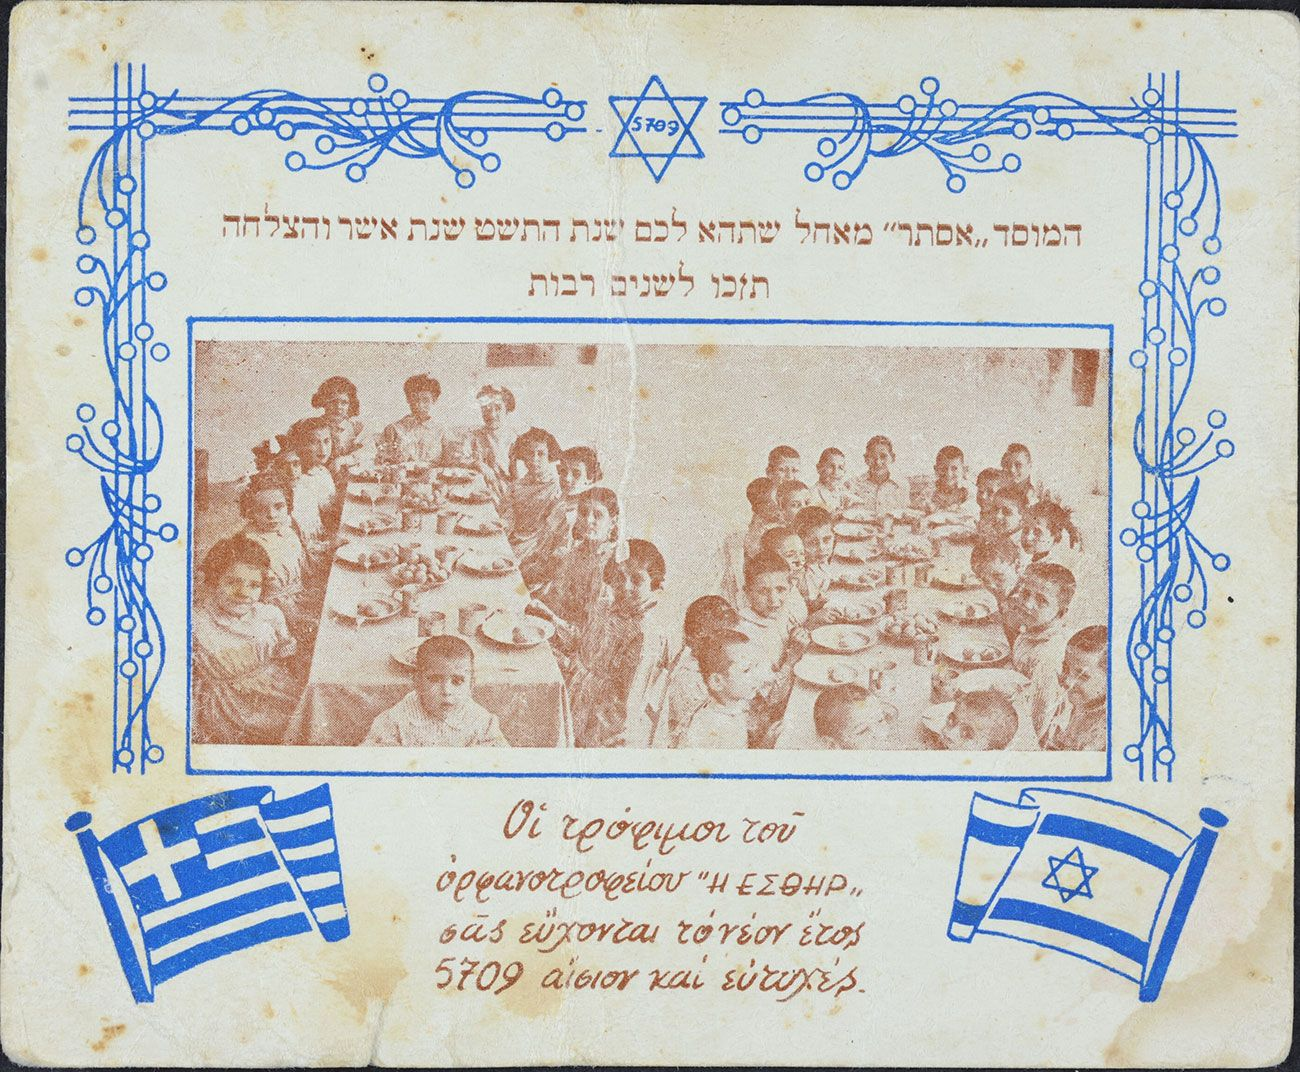 Shana tova happy new year card for the jewish year 5709 from shana tova happy new year card for the jewish year 5709 from kristyandbryce Image collections